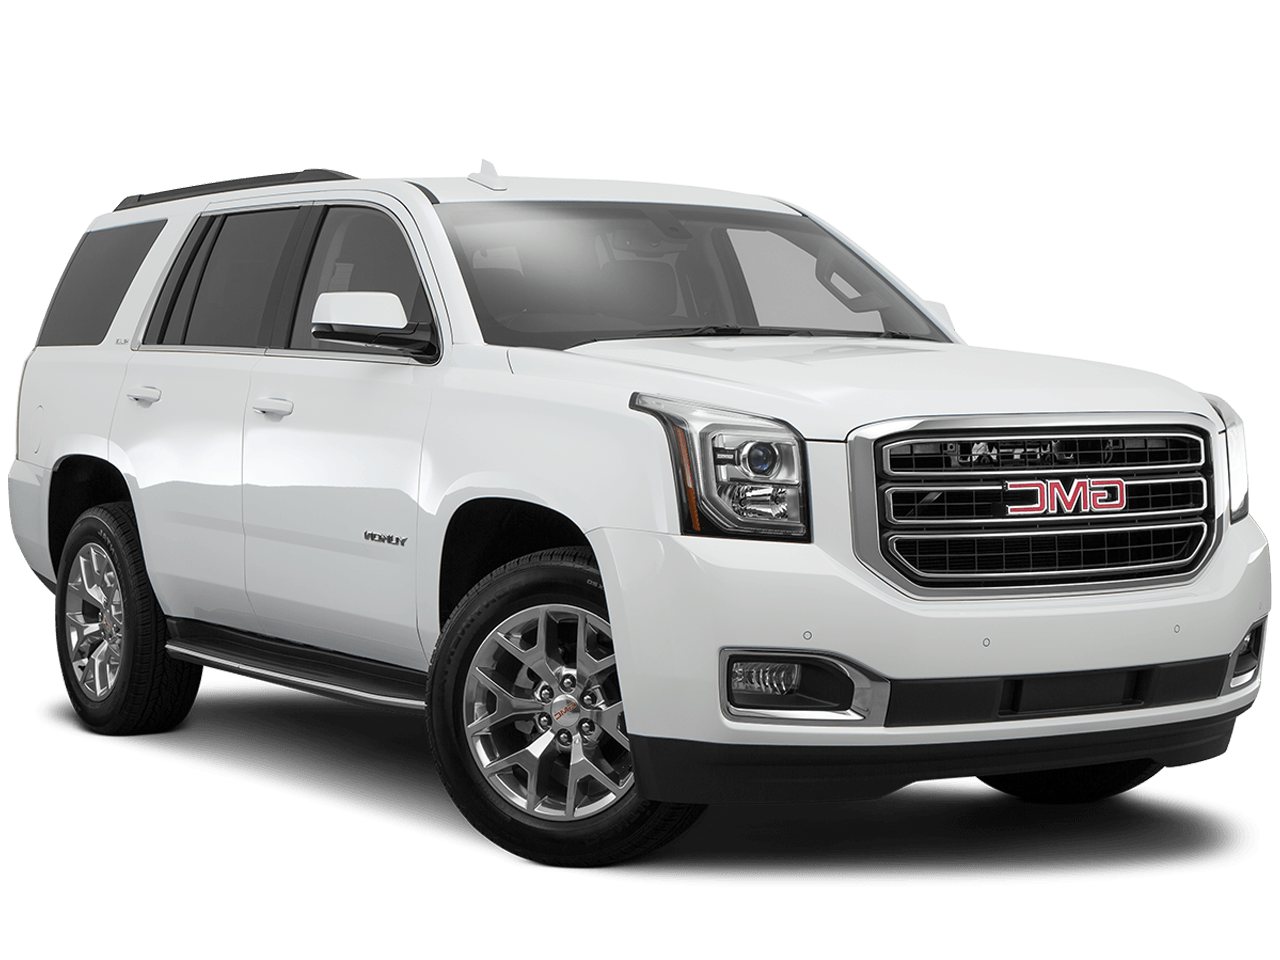 New Gmc Yukon Lease Offers And Best Prices Near Manchester